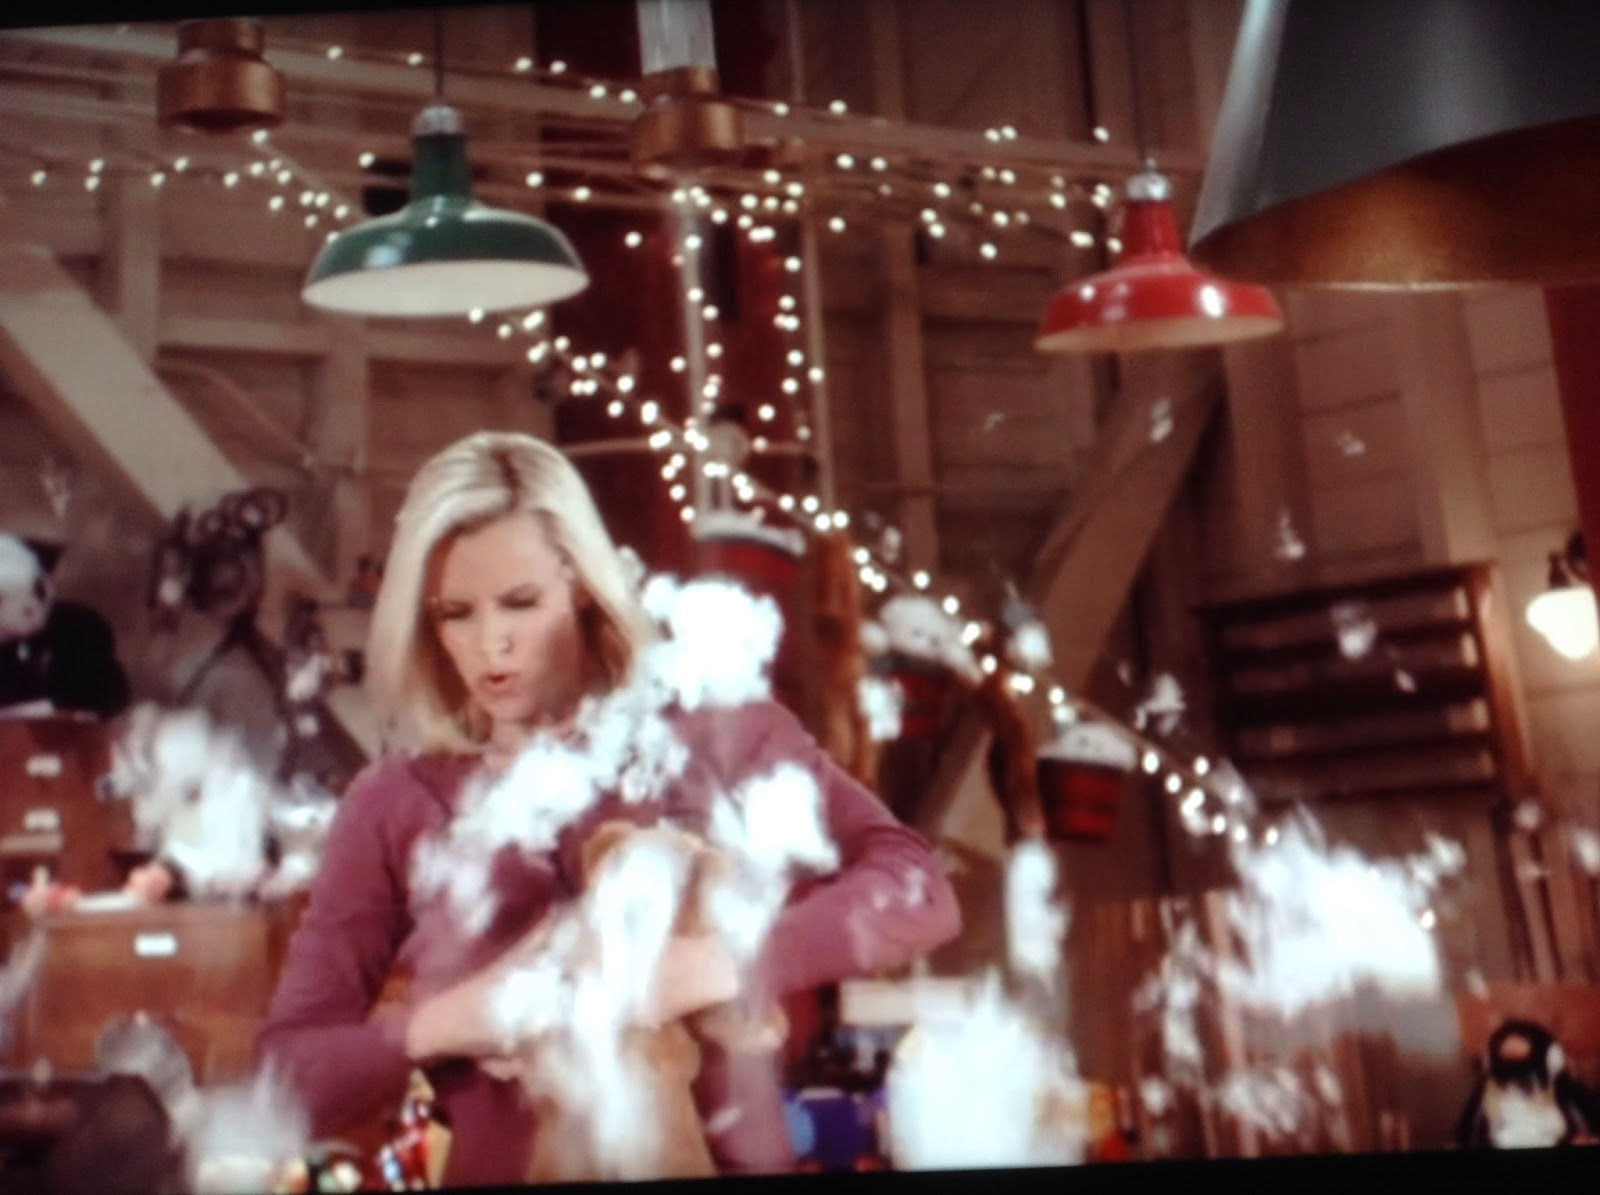 for your consideration santa baby 2 christmas maybe 2009 - Santa Baby 2 Christmas Maybe